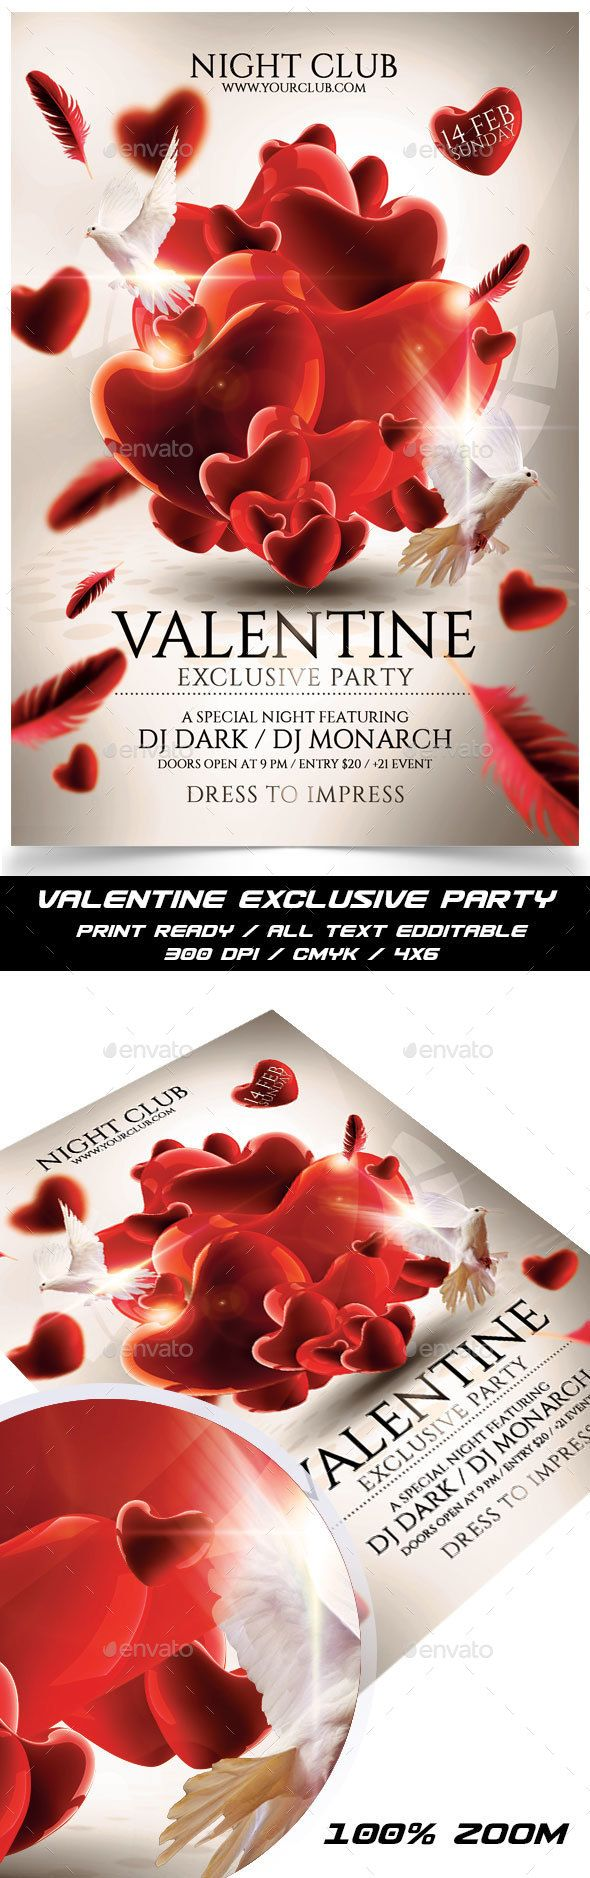 Valentine Exclusive Party,darkmonarch, day flyer template, red, valentine flyer, valentine's, valentine's day, valentine's flyer, valentine's poster, valentines, valentines day, valentines day party, valentines flyer